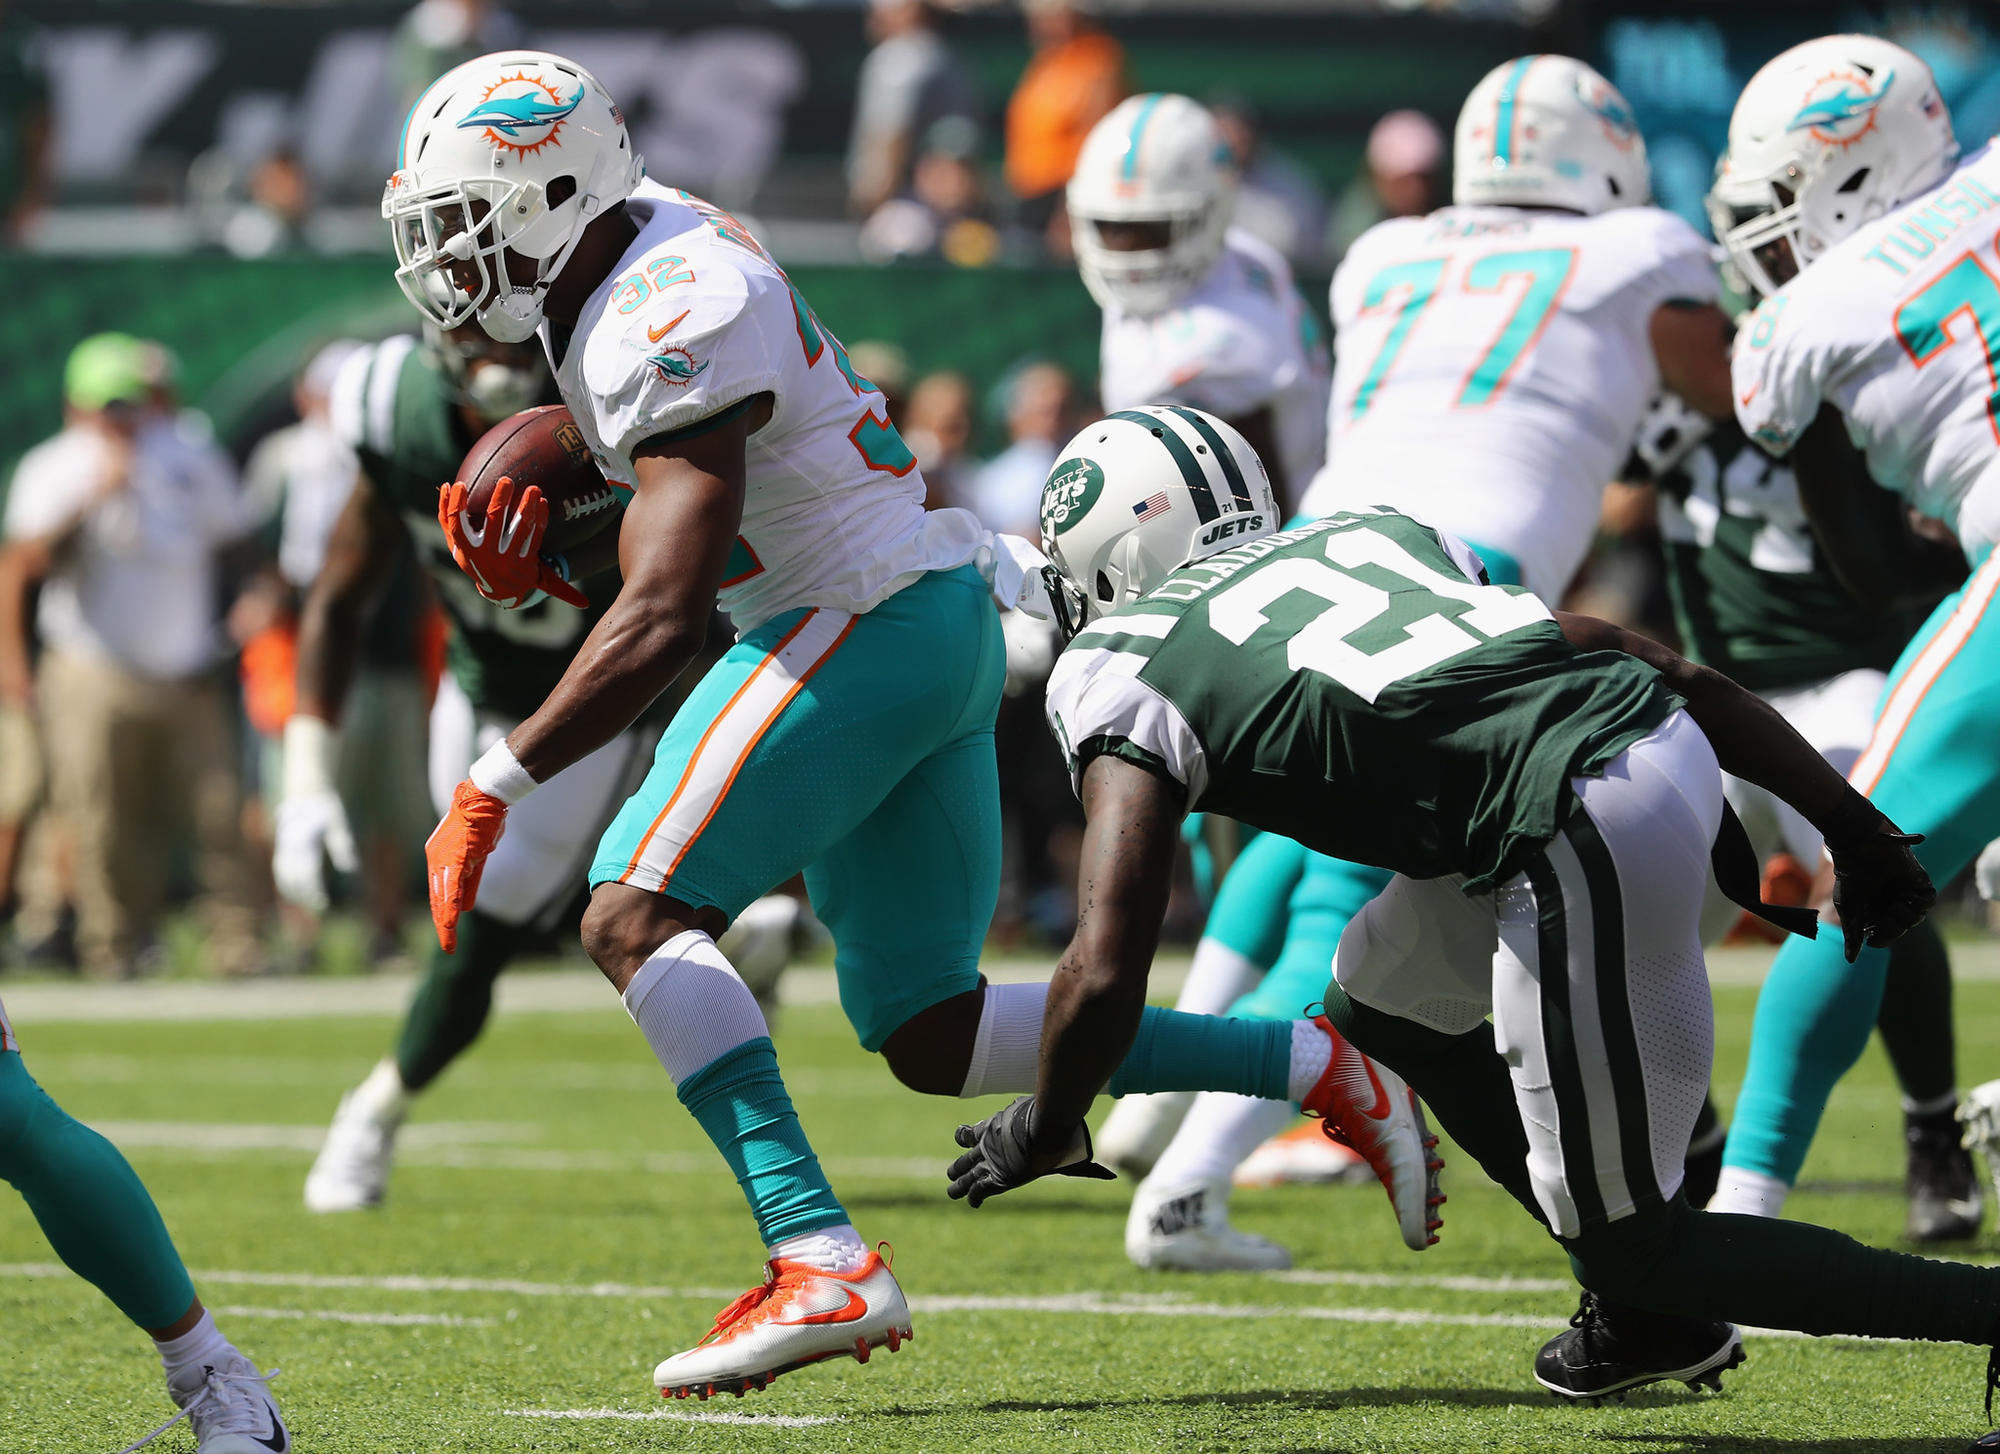 Fl-sp-hyde5-snaps-dolphins-jets-20180917